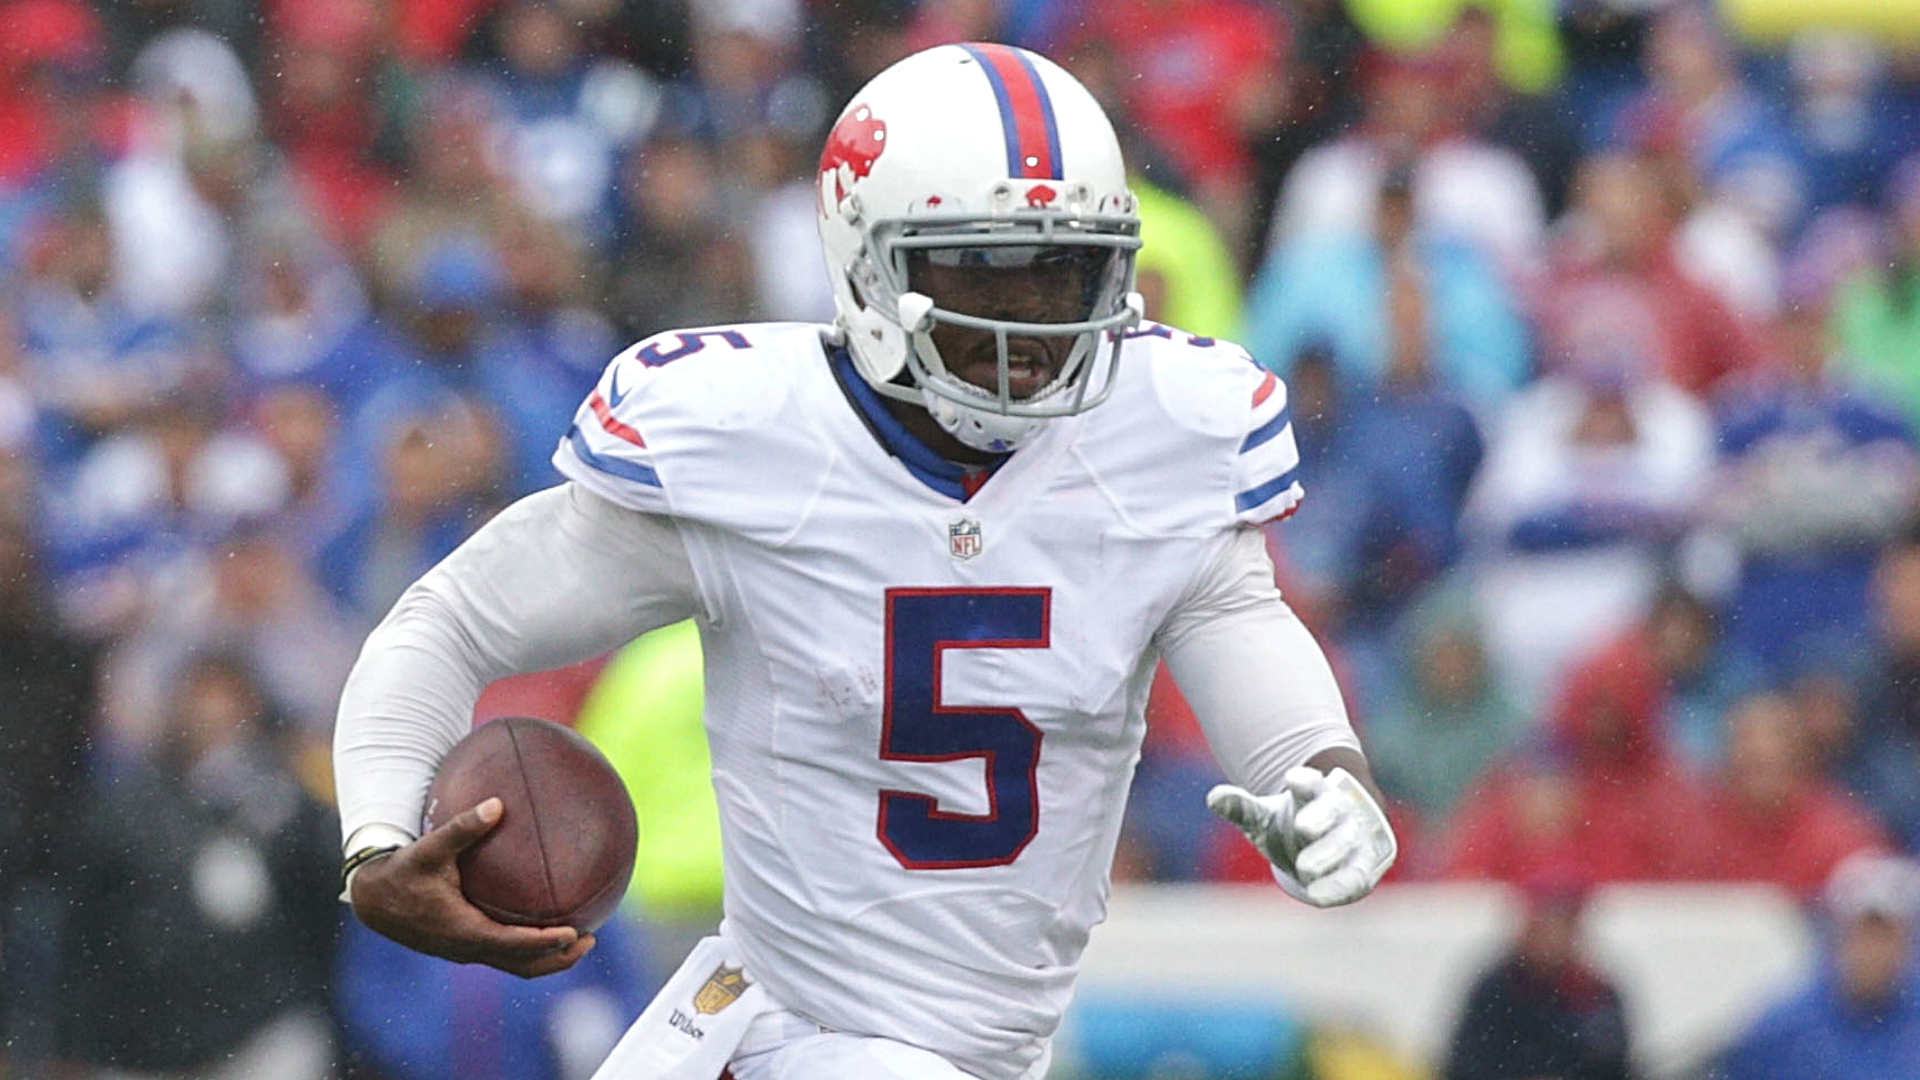 Tyrod-Taylor-091315-USNews-Getty-FTR